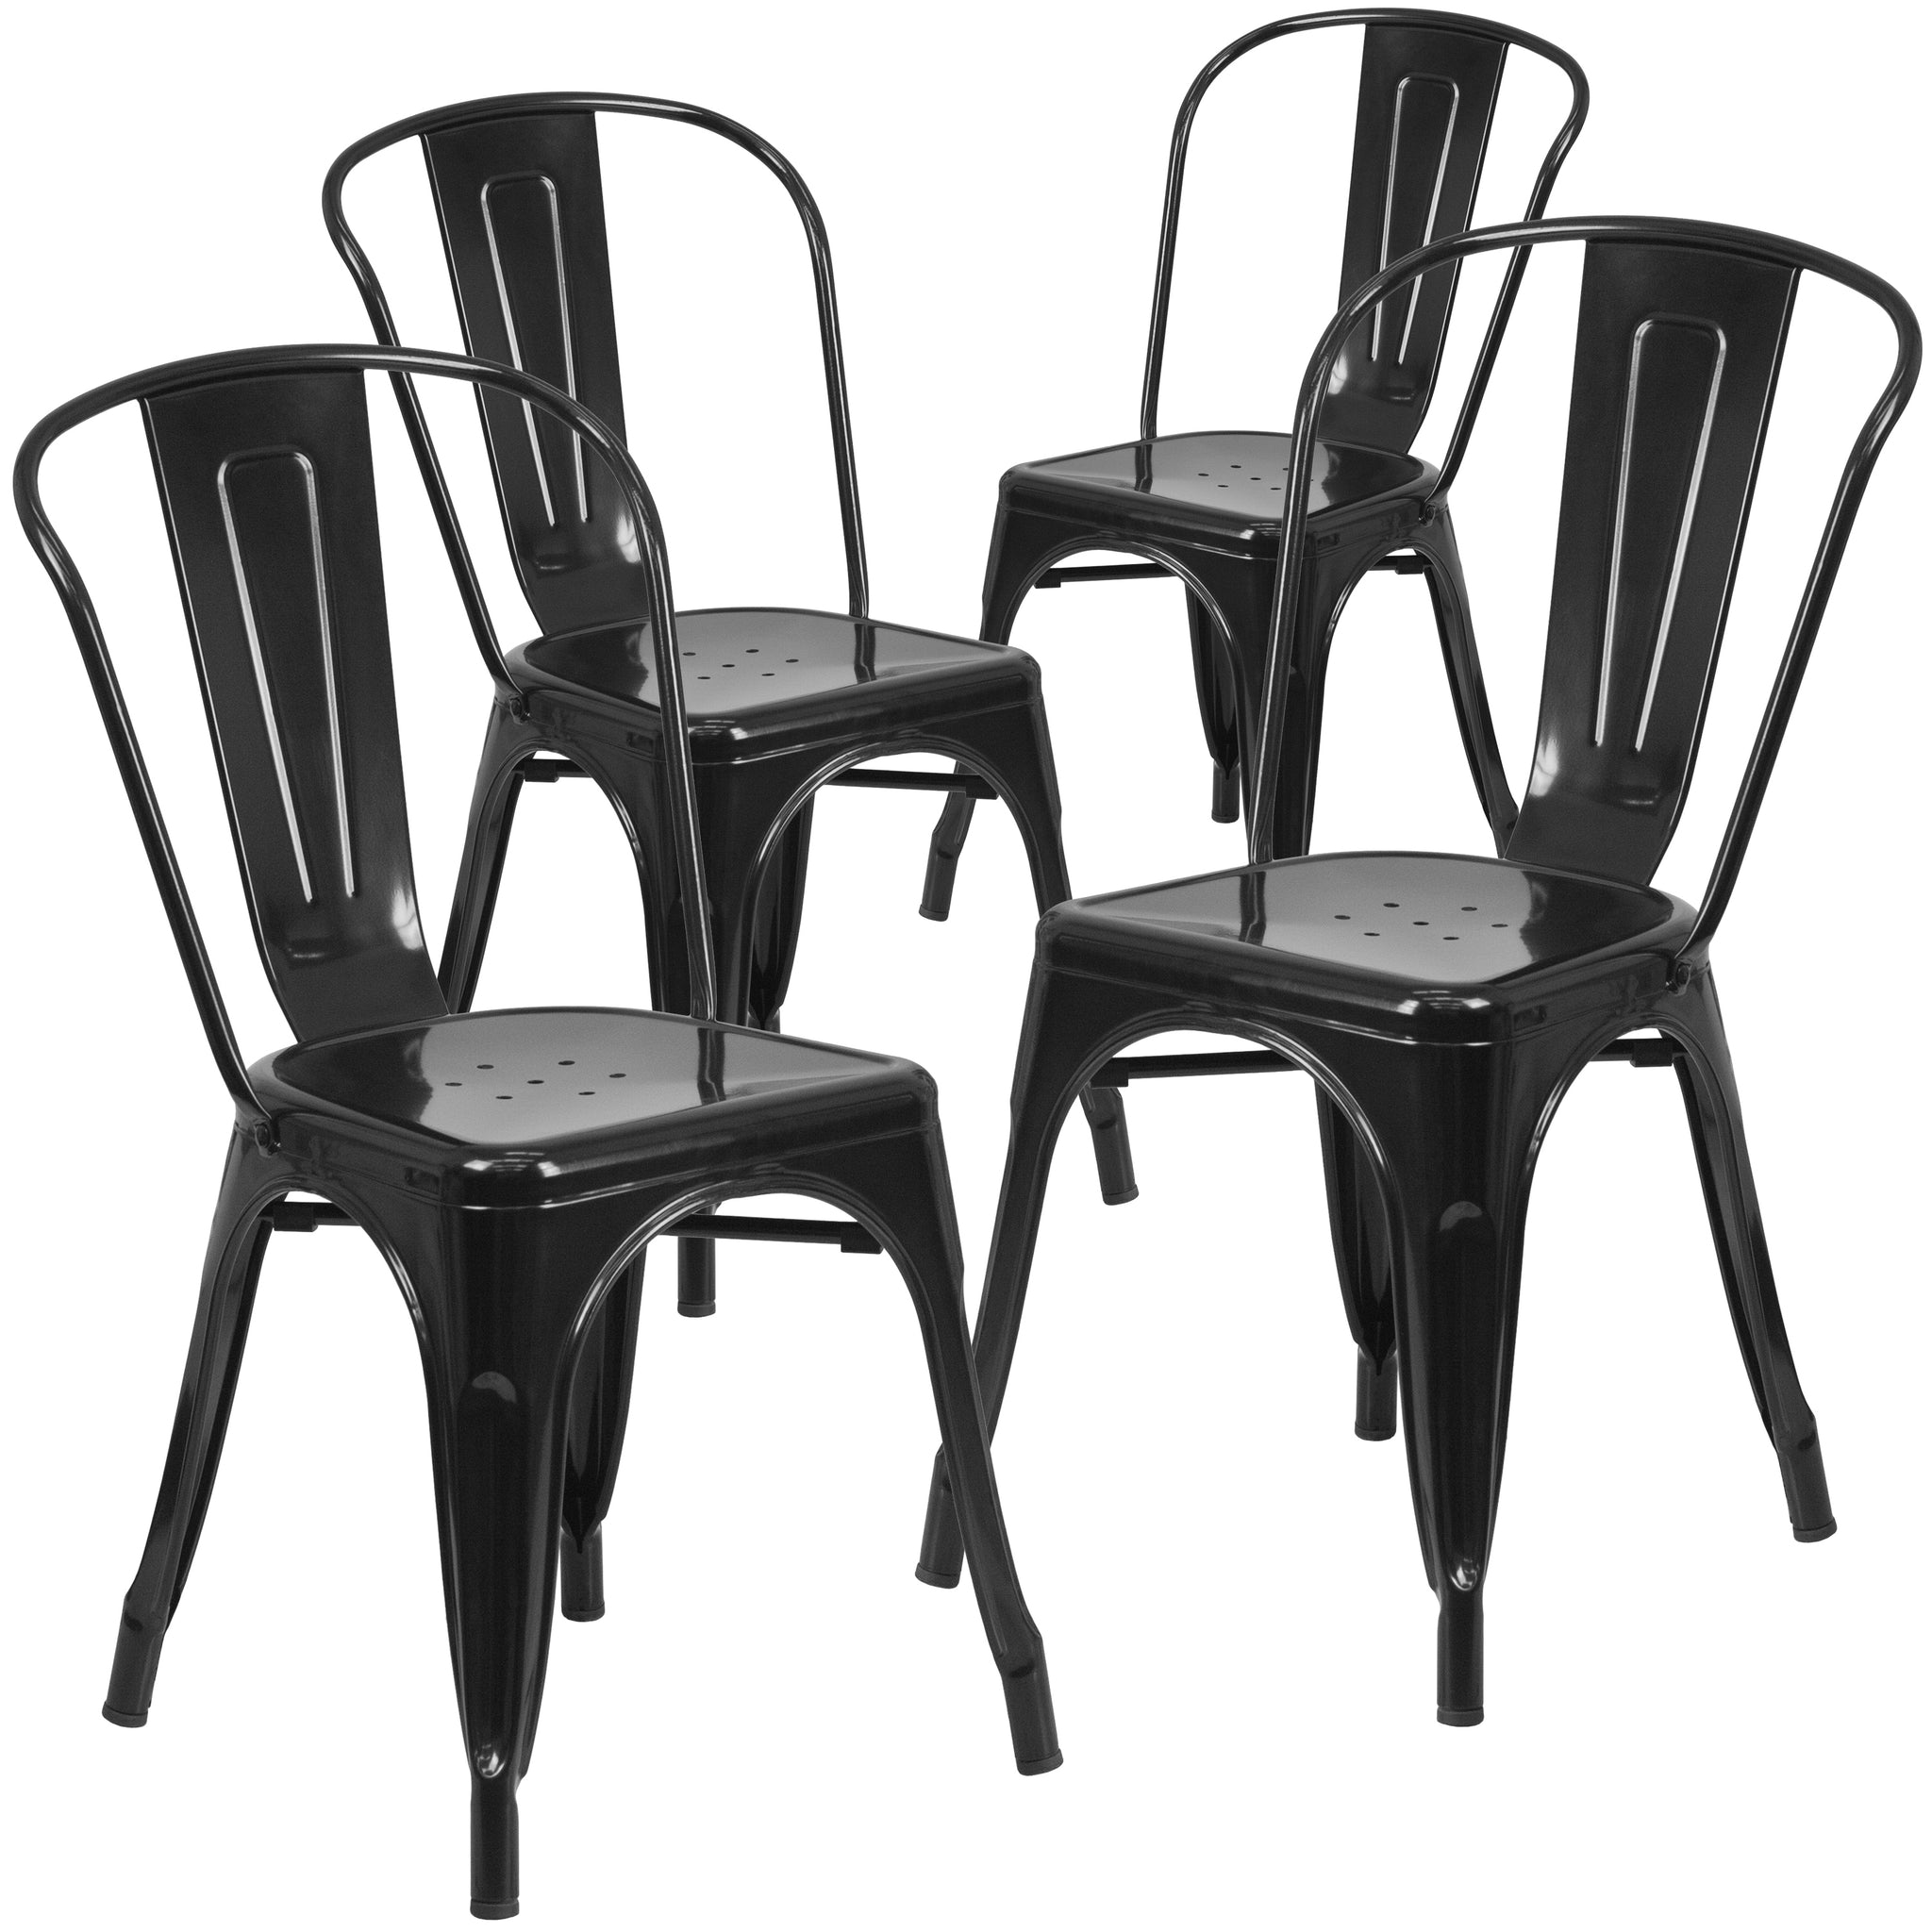 4 Pk. Metal Indoor-Outdoor Stackable Chair: Black-Antique Gold